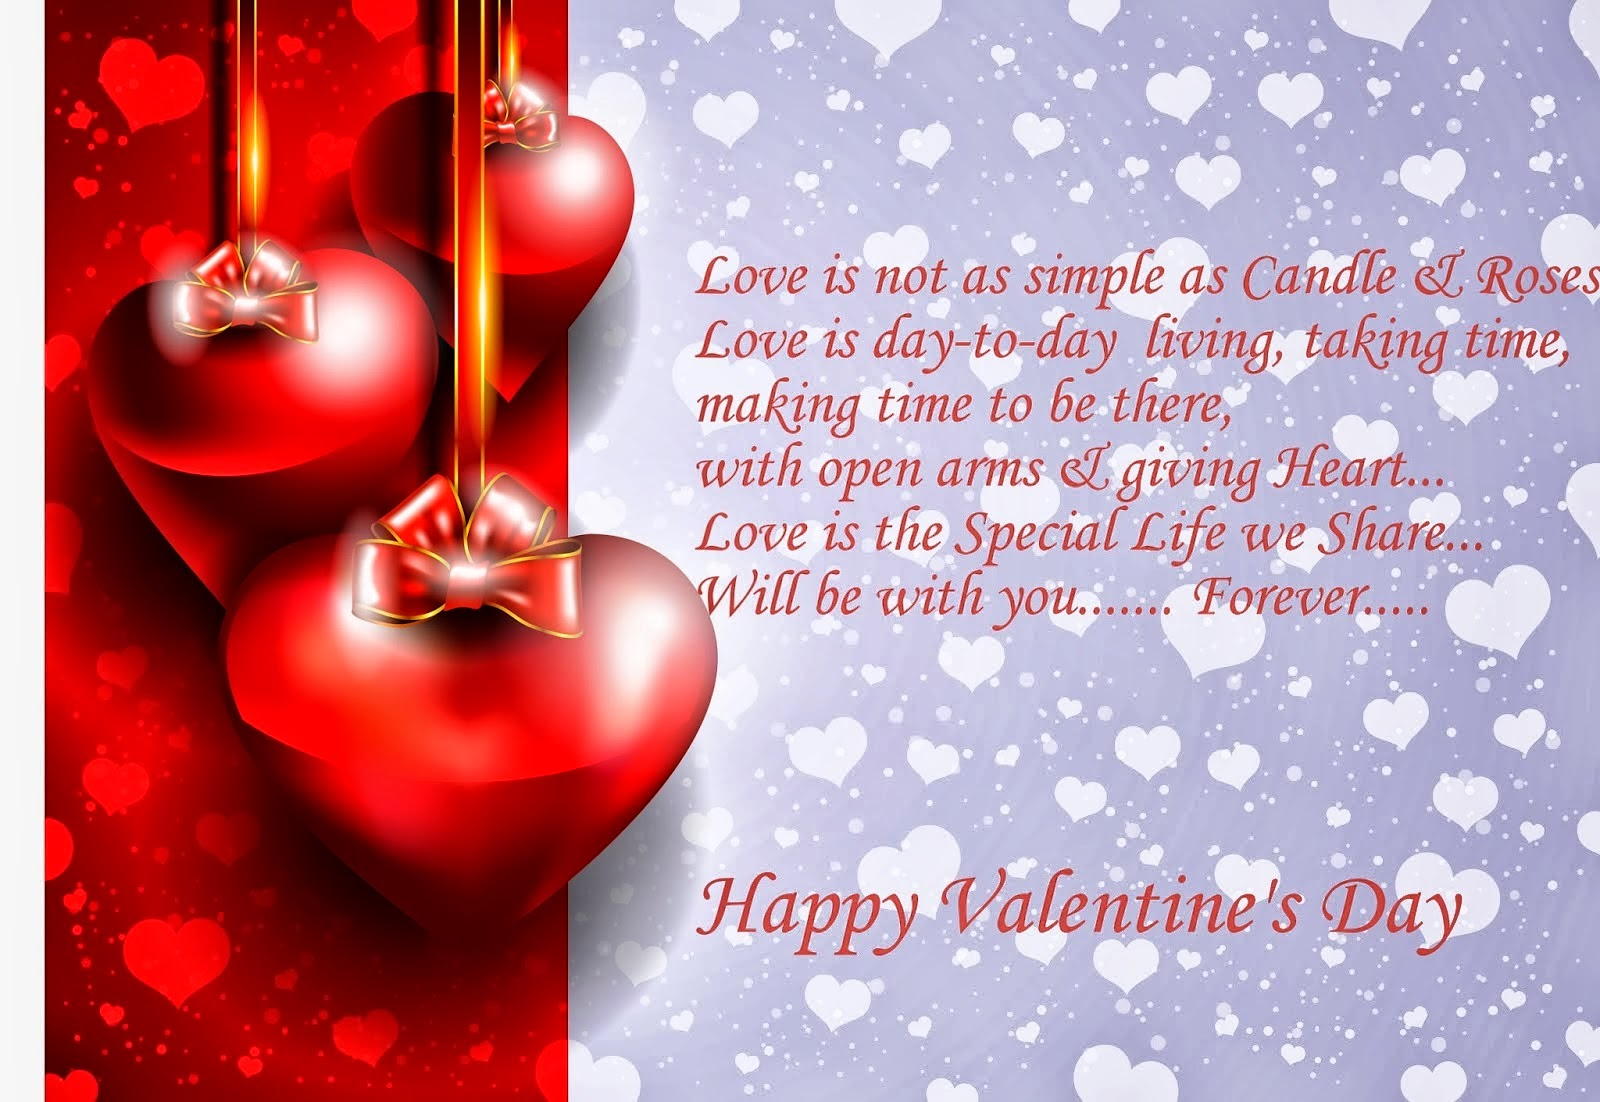 Happy Valentines Day HD Wallpaper Images